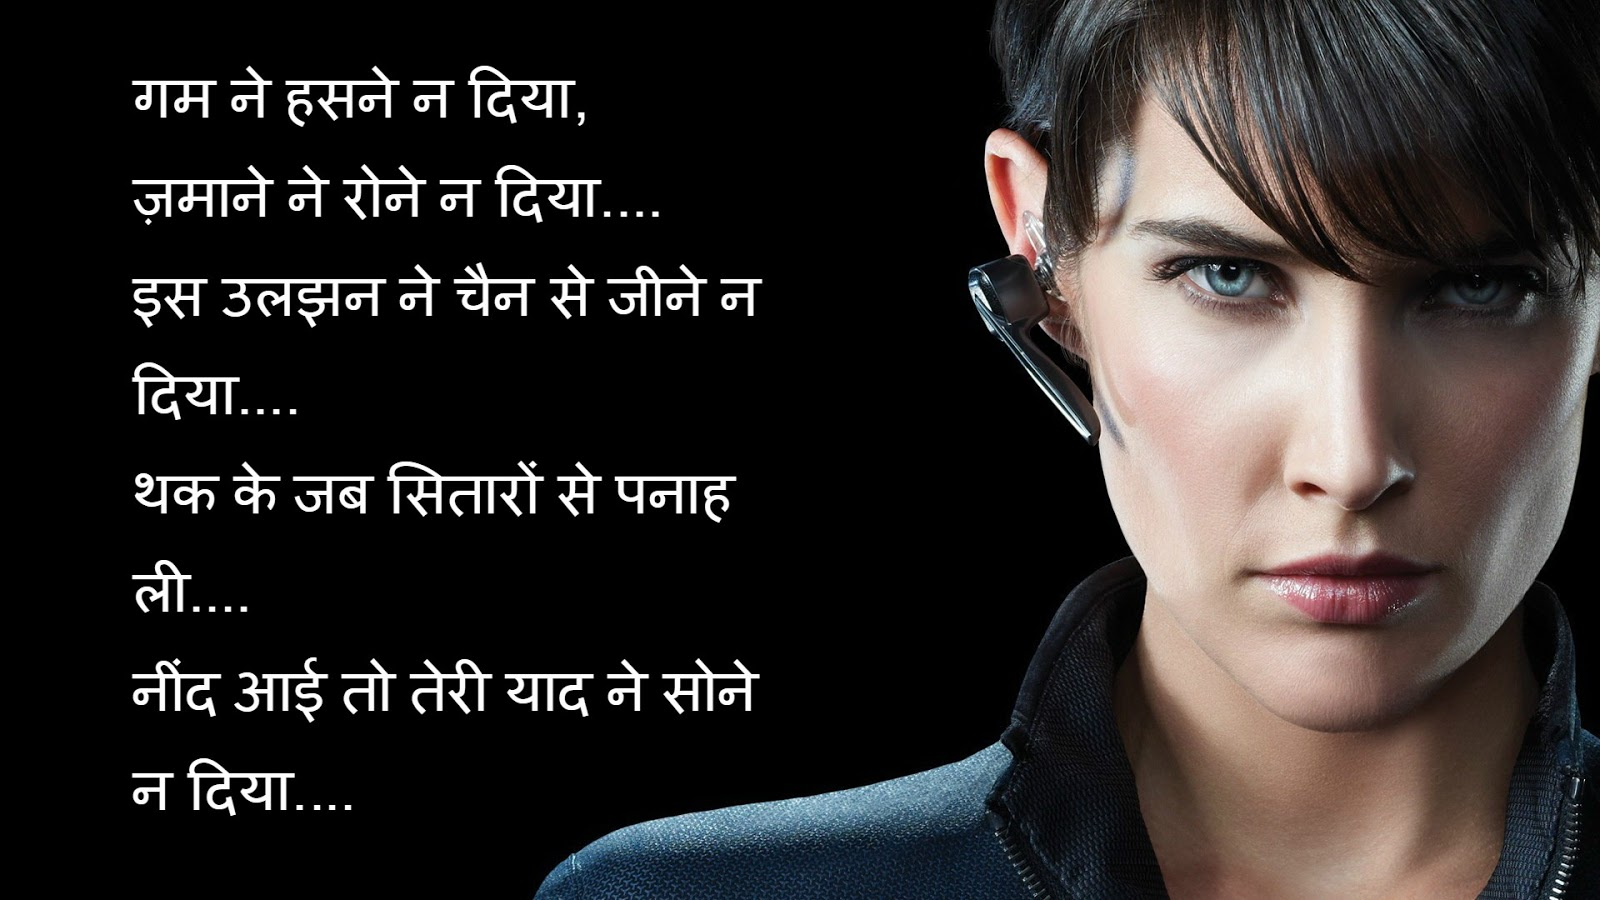 flirt shayari hindi for girlfriend Good night shayari in hindi : latest good night shayari collection for girlfriend & boyfriend romantic love gud night shayari images in hindi funny gn shayari for friends, husband & wife.